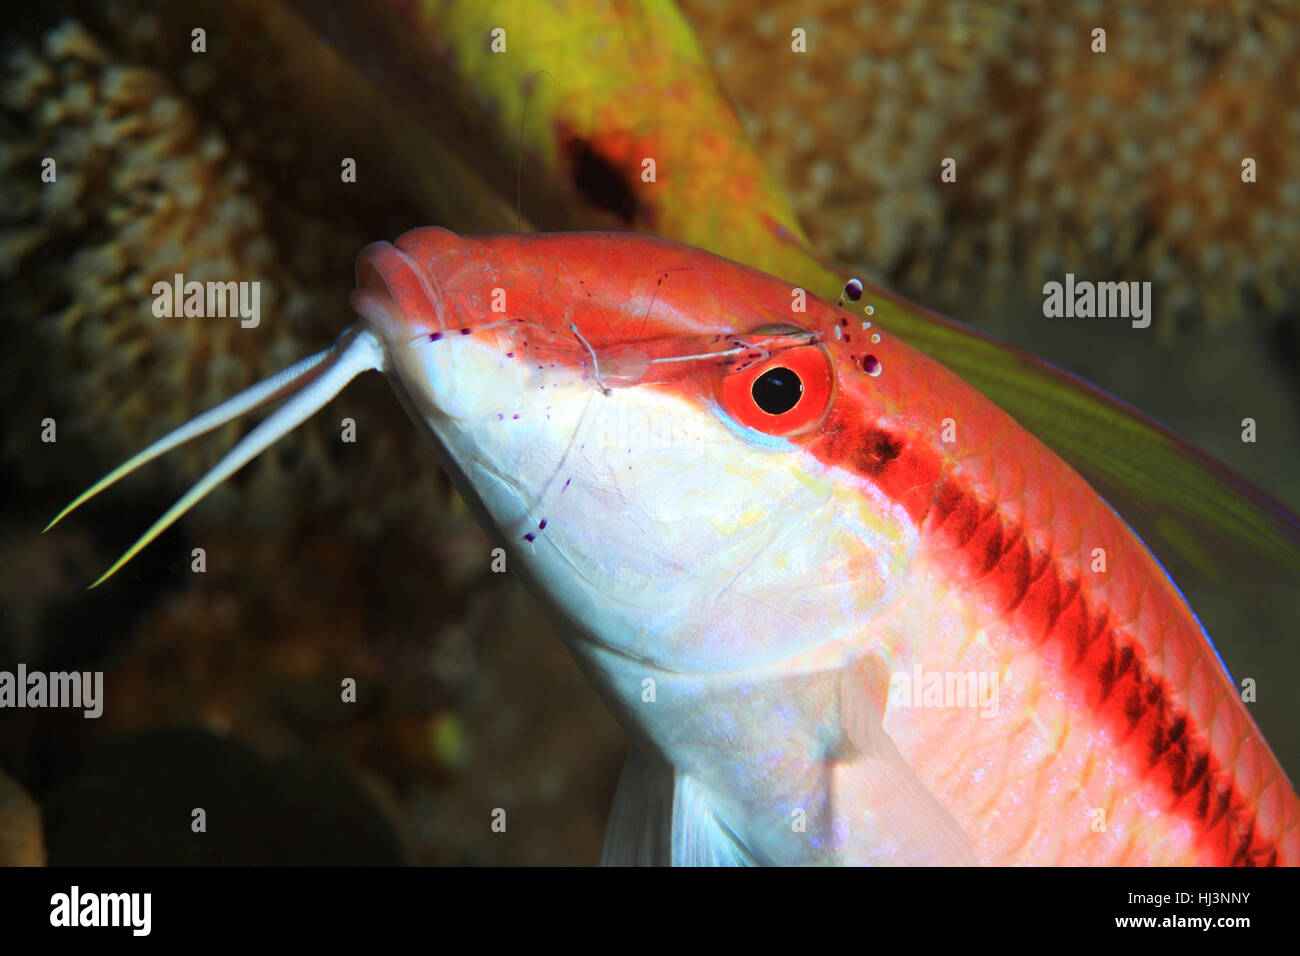 Redstriped goatfish (Parupeneus rubescens) with cleaner shrimp underwater in the coral reef - Stock Image